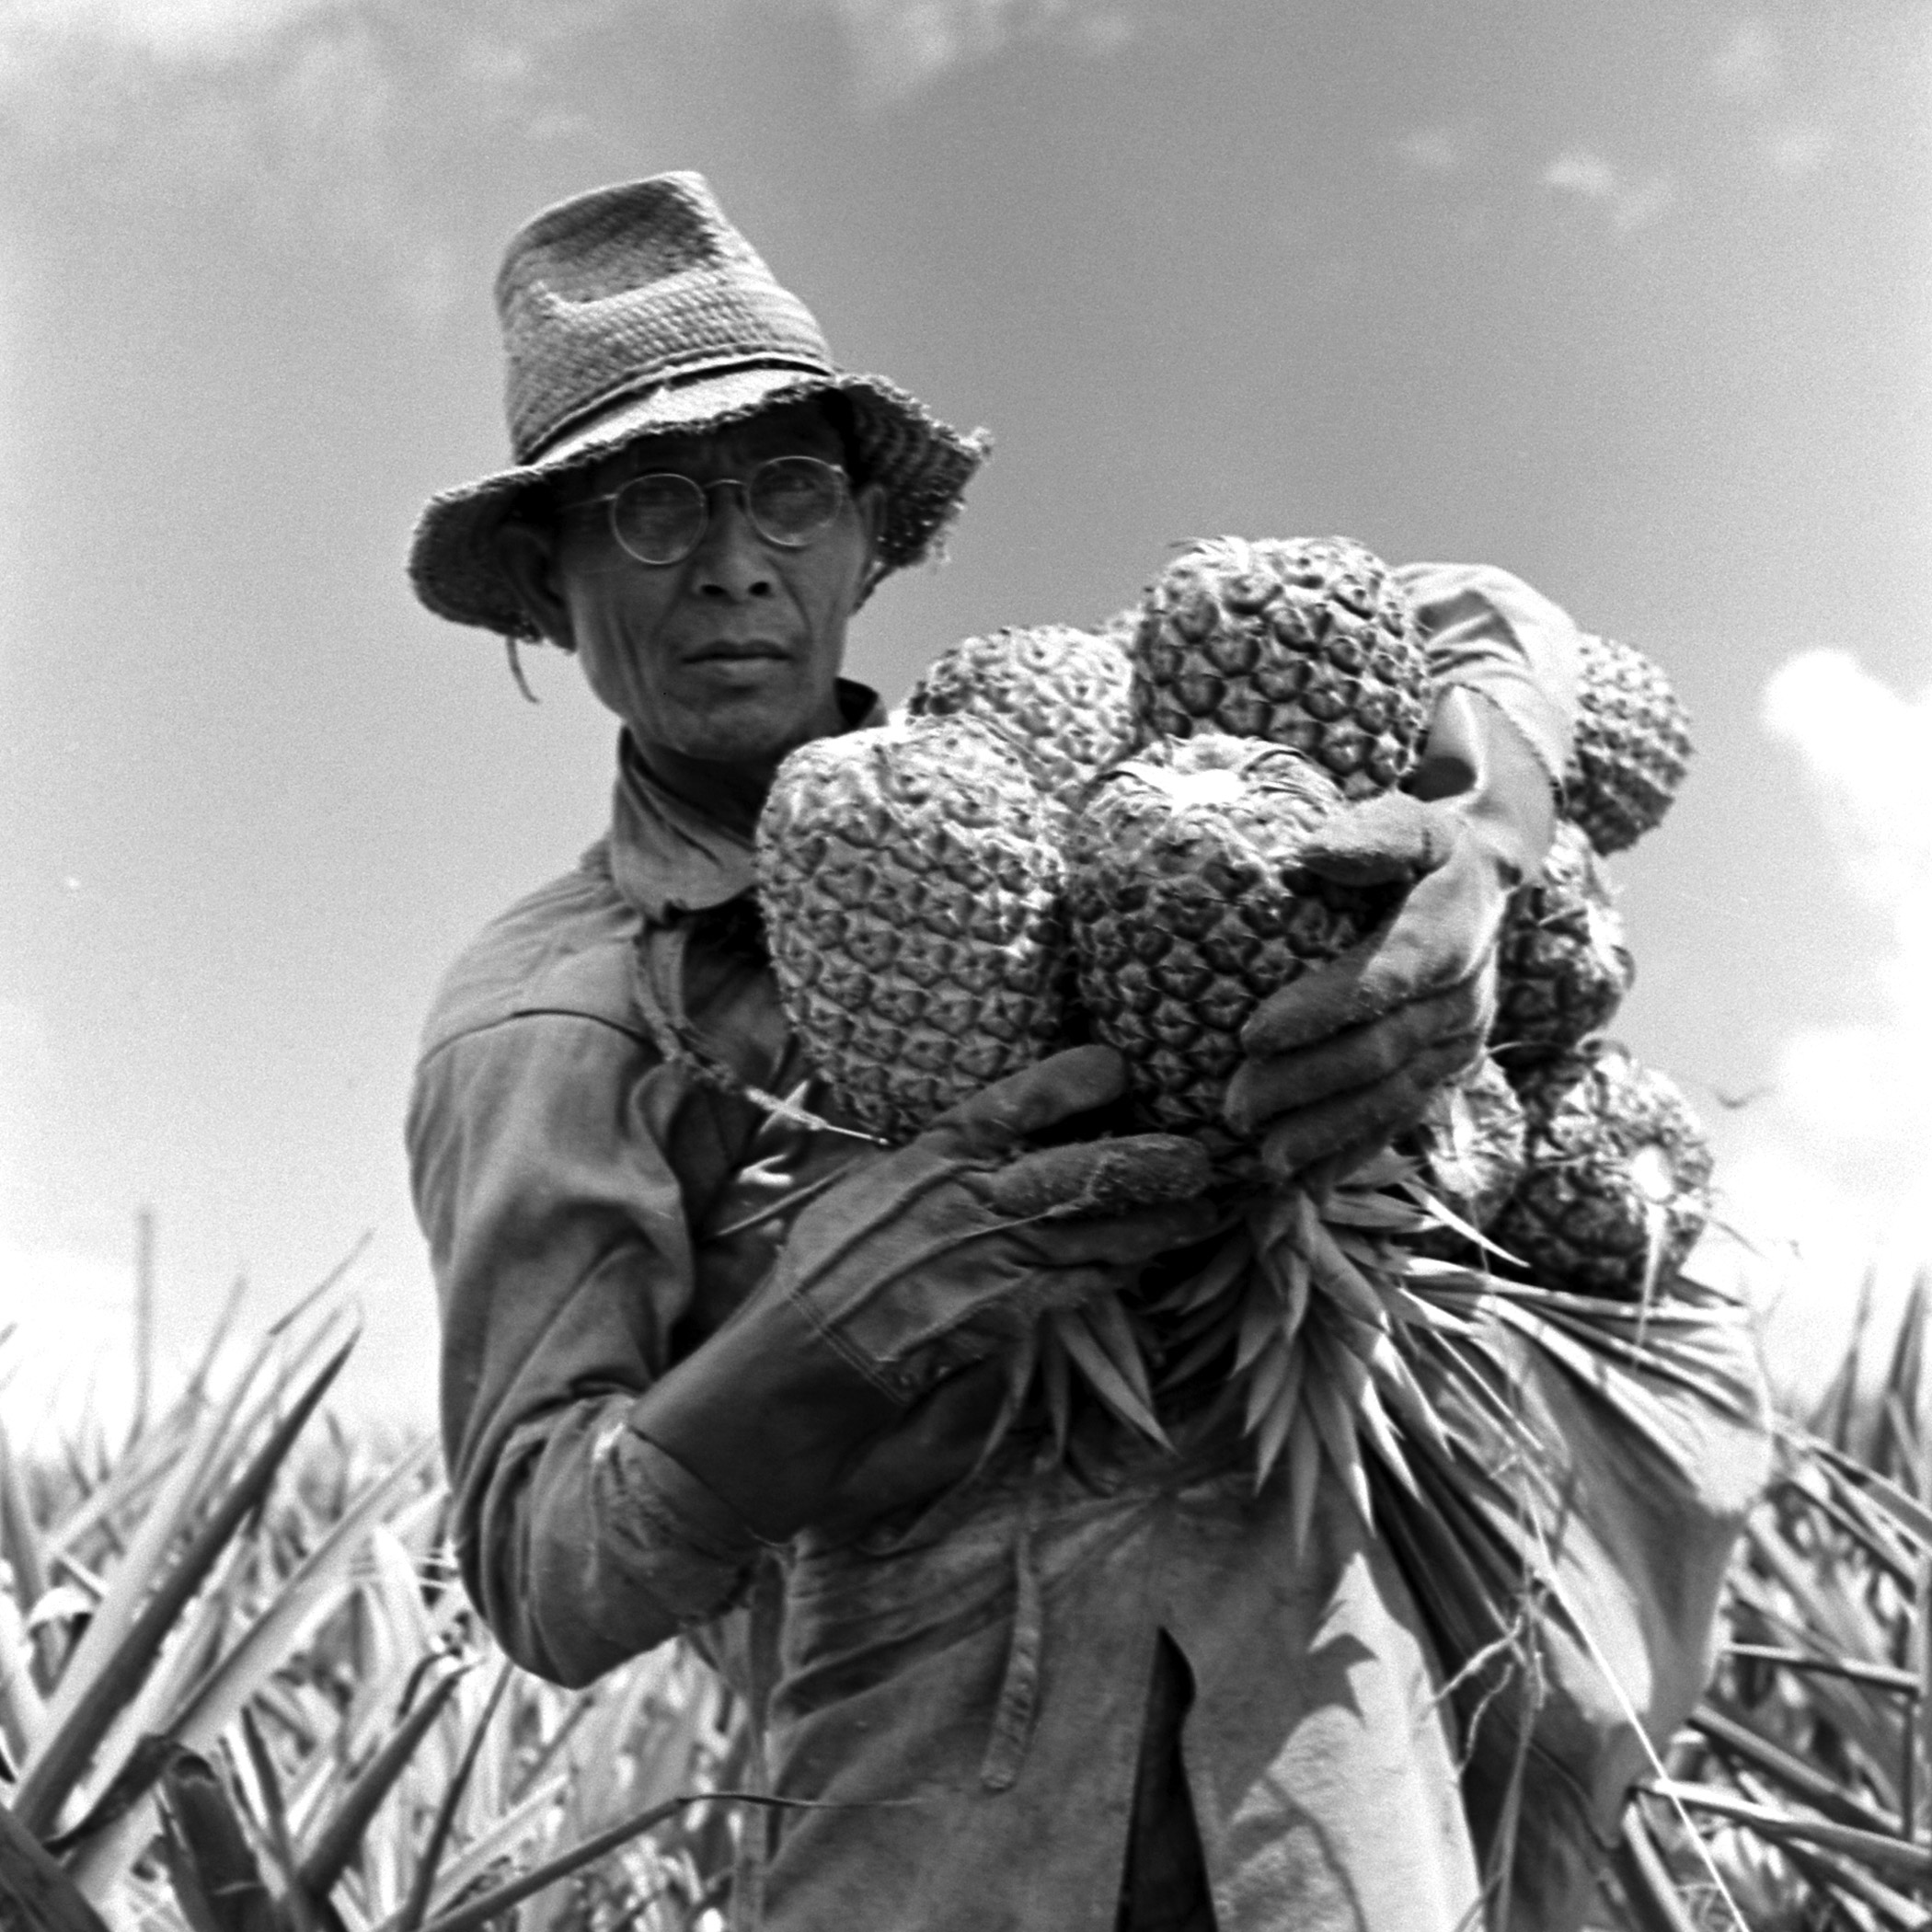 A worker on the Dole plantation carries an armload of pineapples.